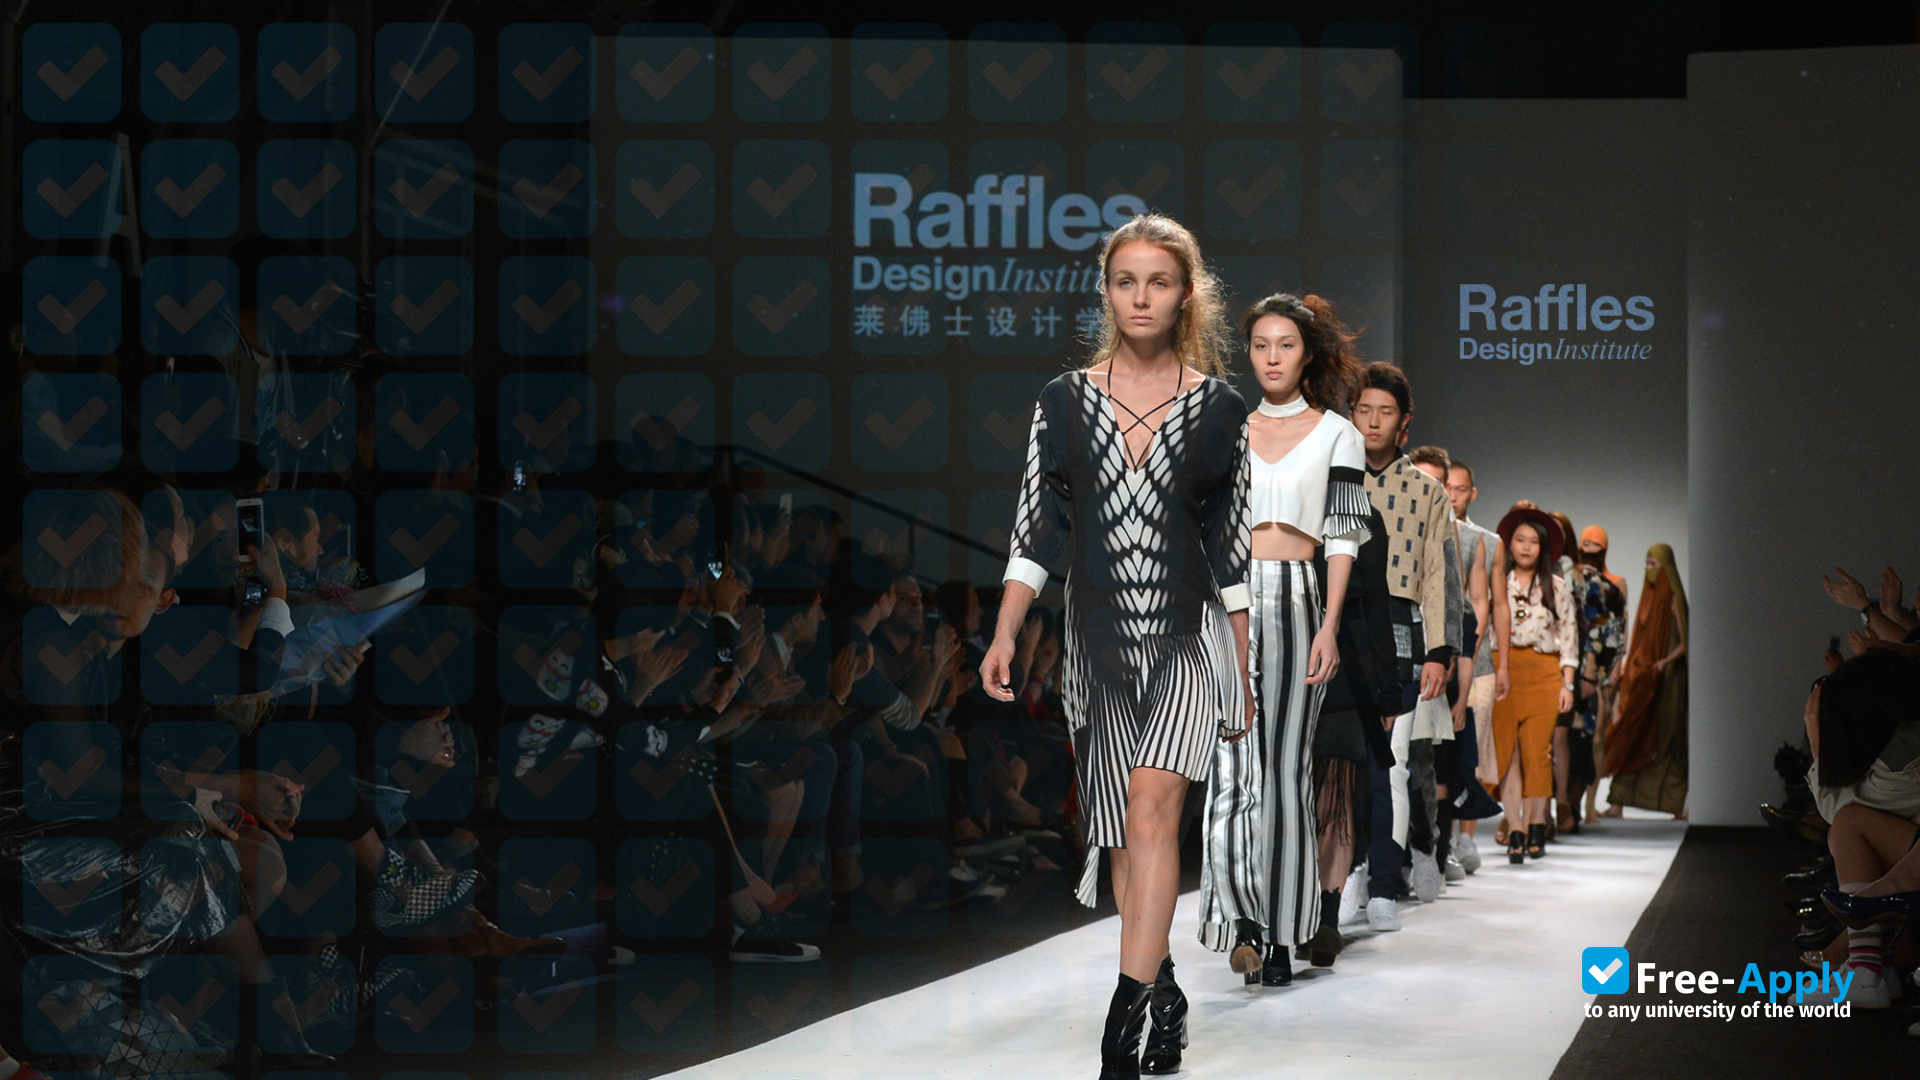 Raffles Design Institute Free Apply Com